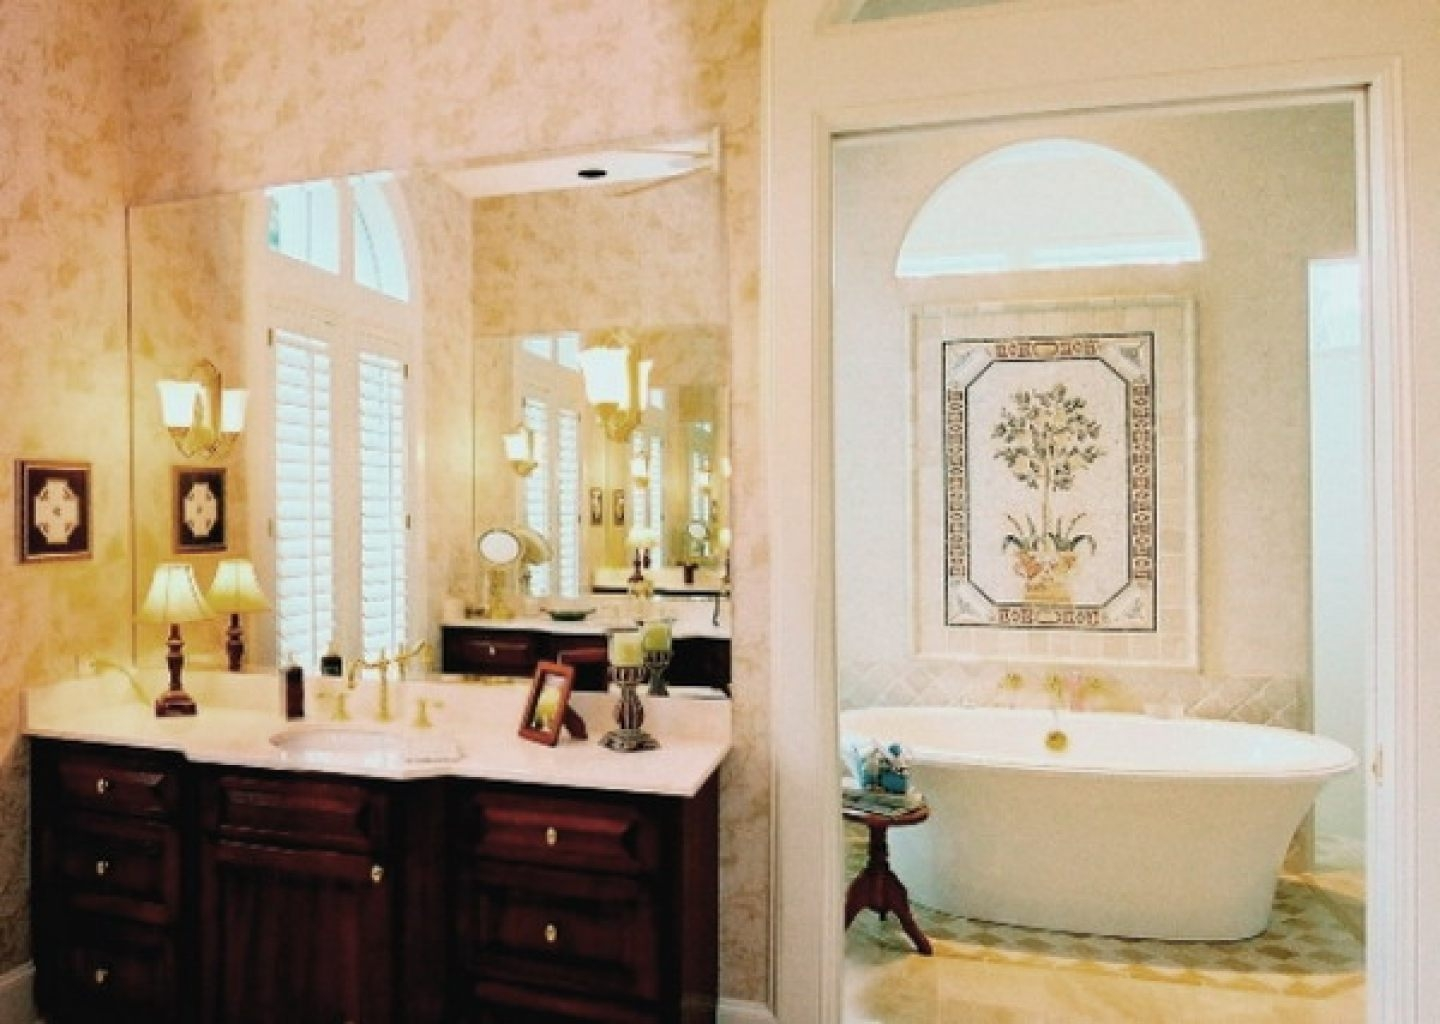 Luxury Master Bathroom Designs White Vessel Bath Sink Big Wall Pertaining To Cream Wall Mirror (Image 13 of 15)